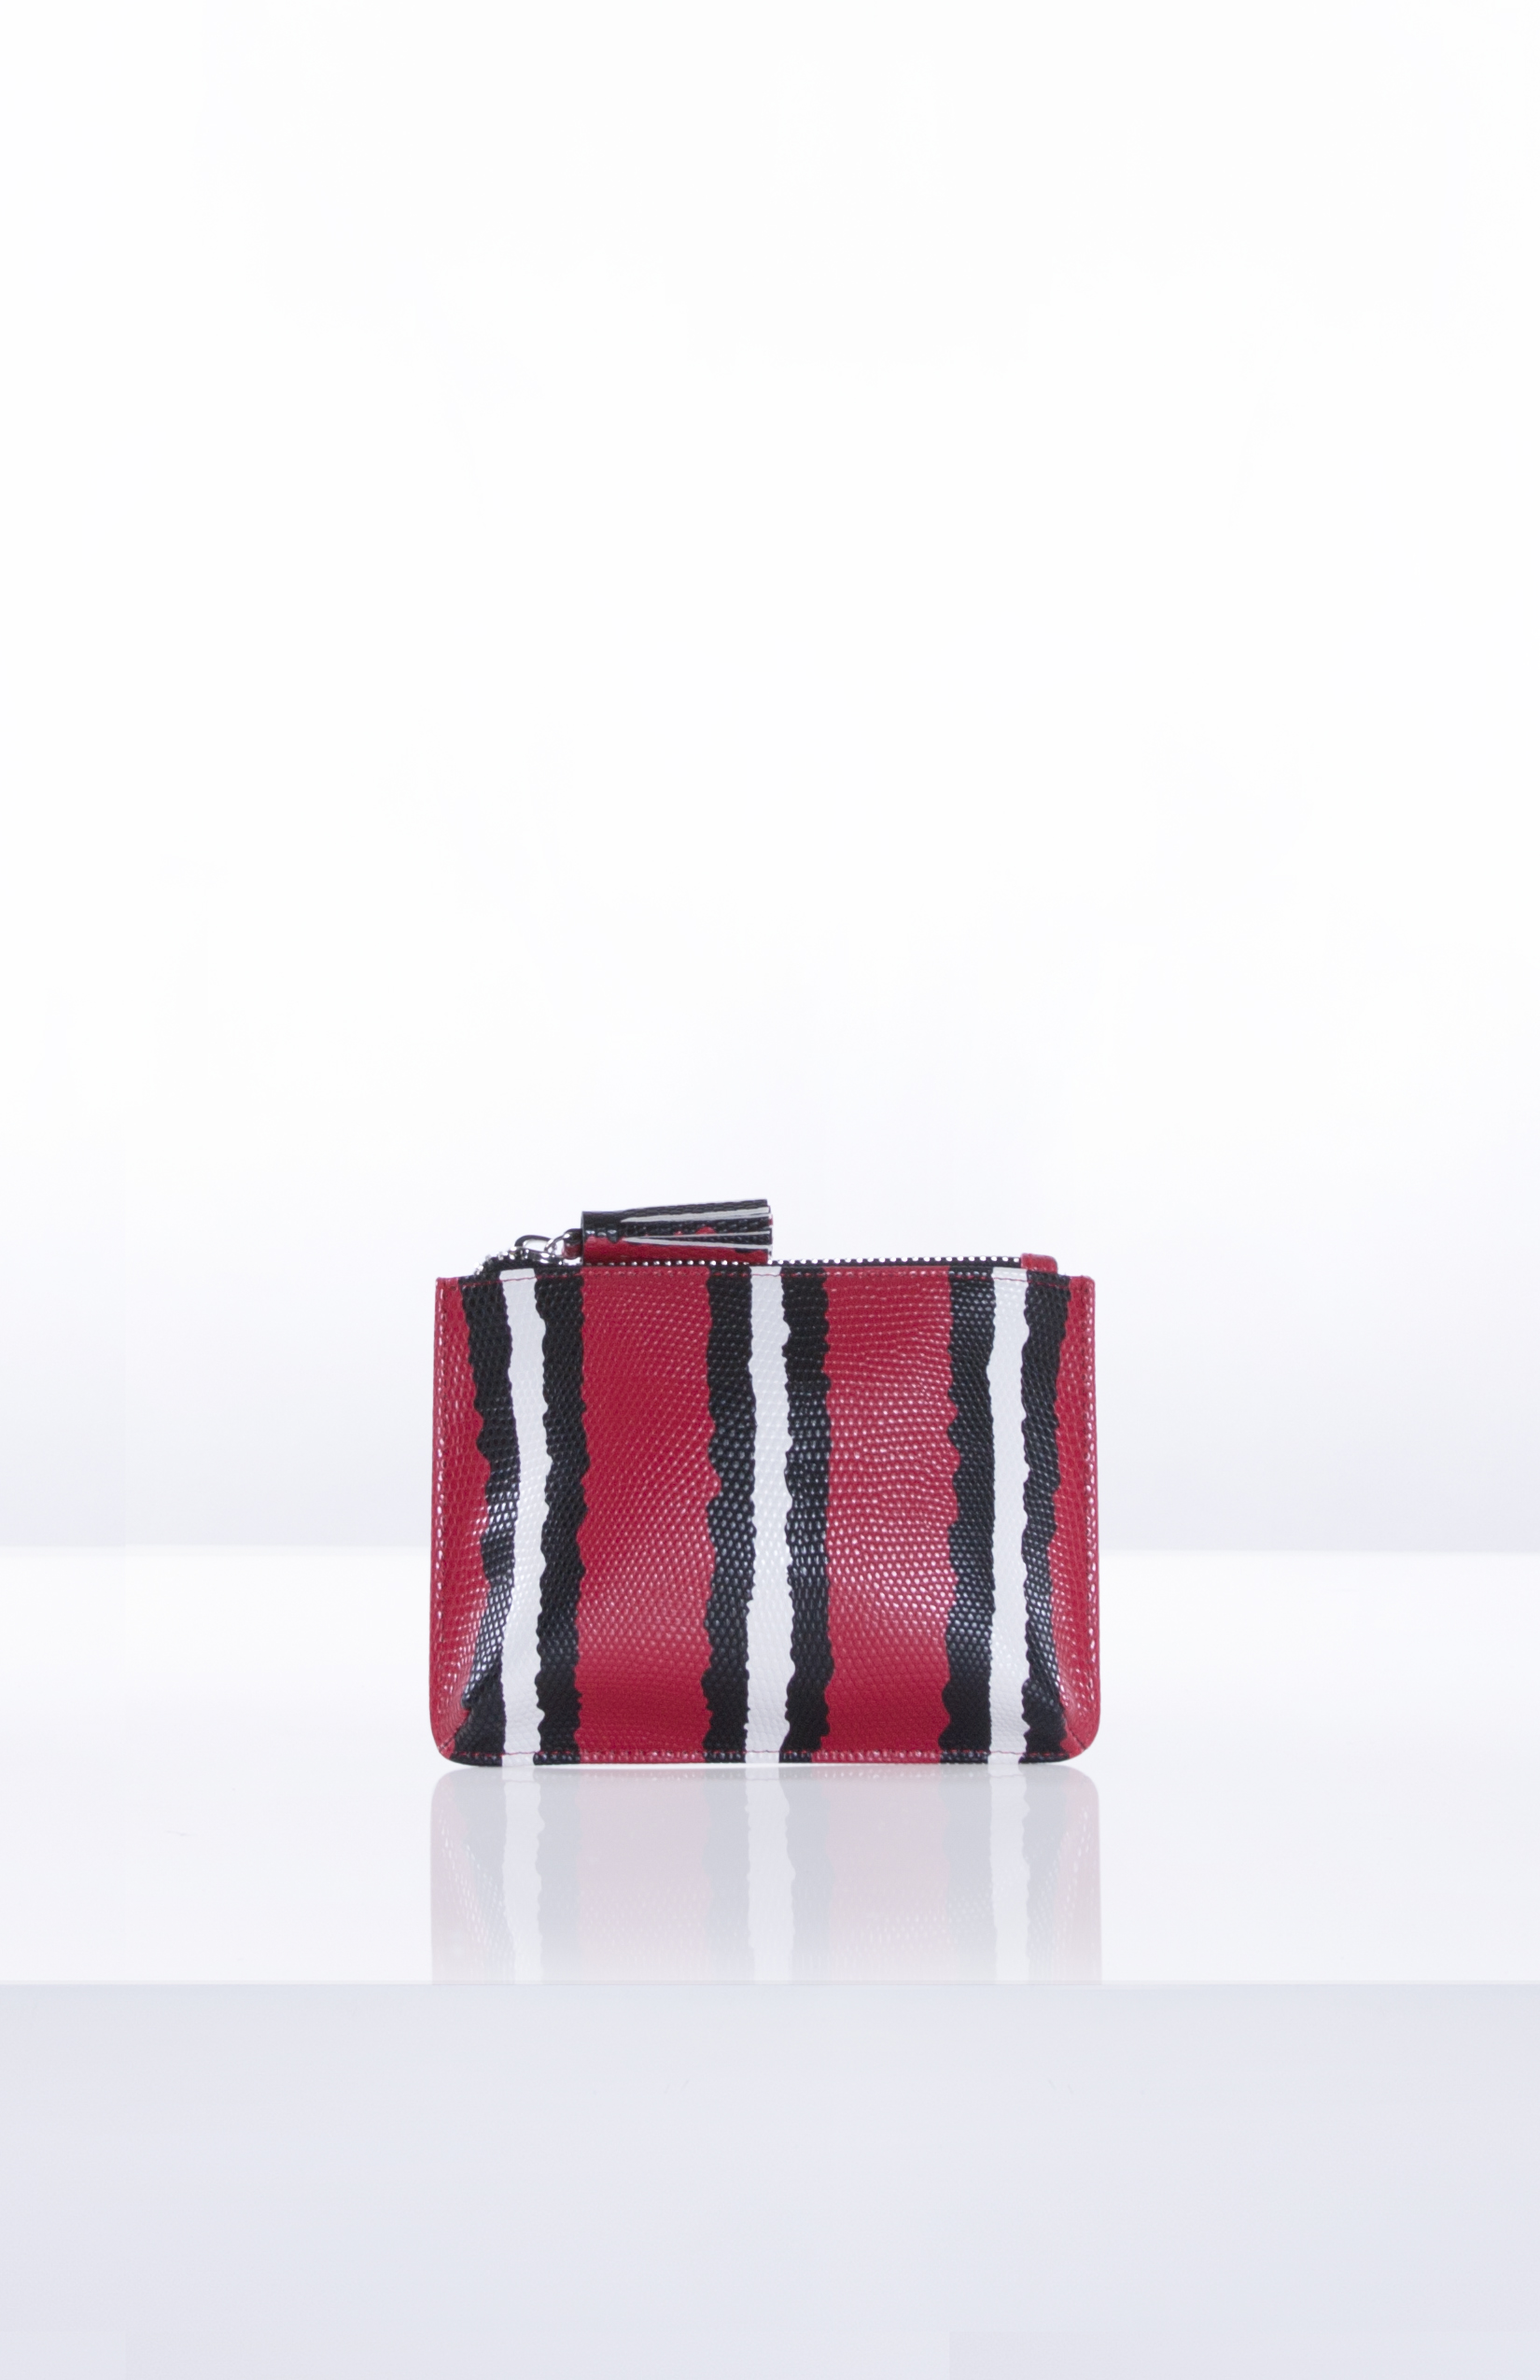 ADELE SNAKE POUCH- Red